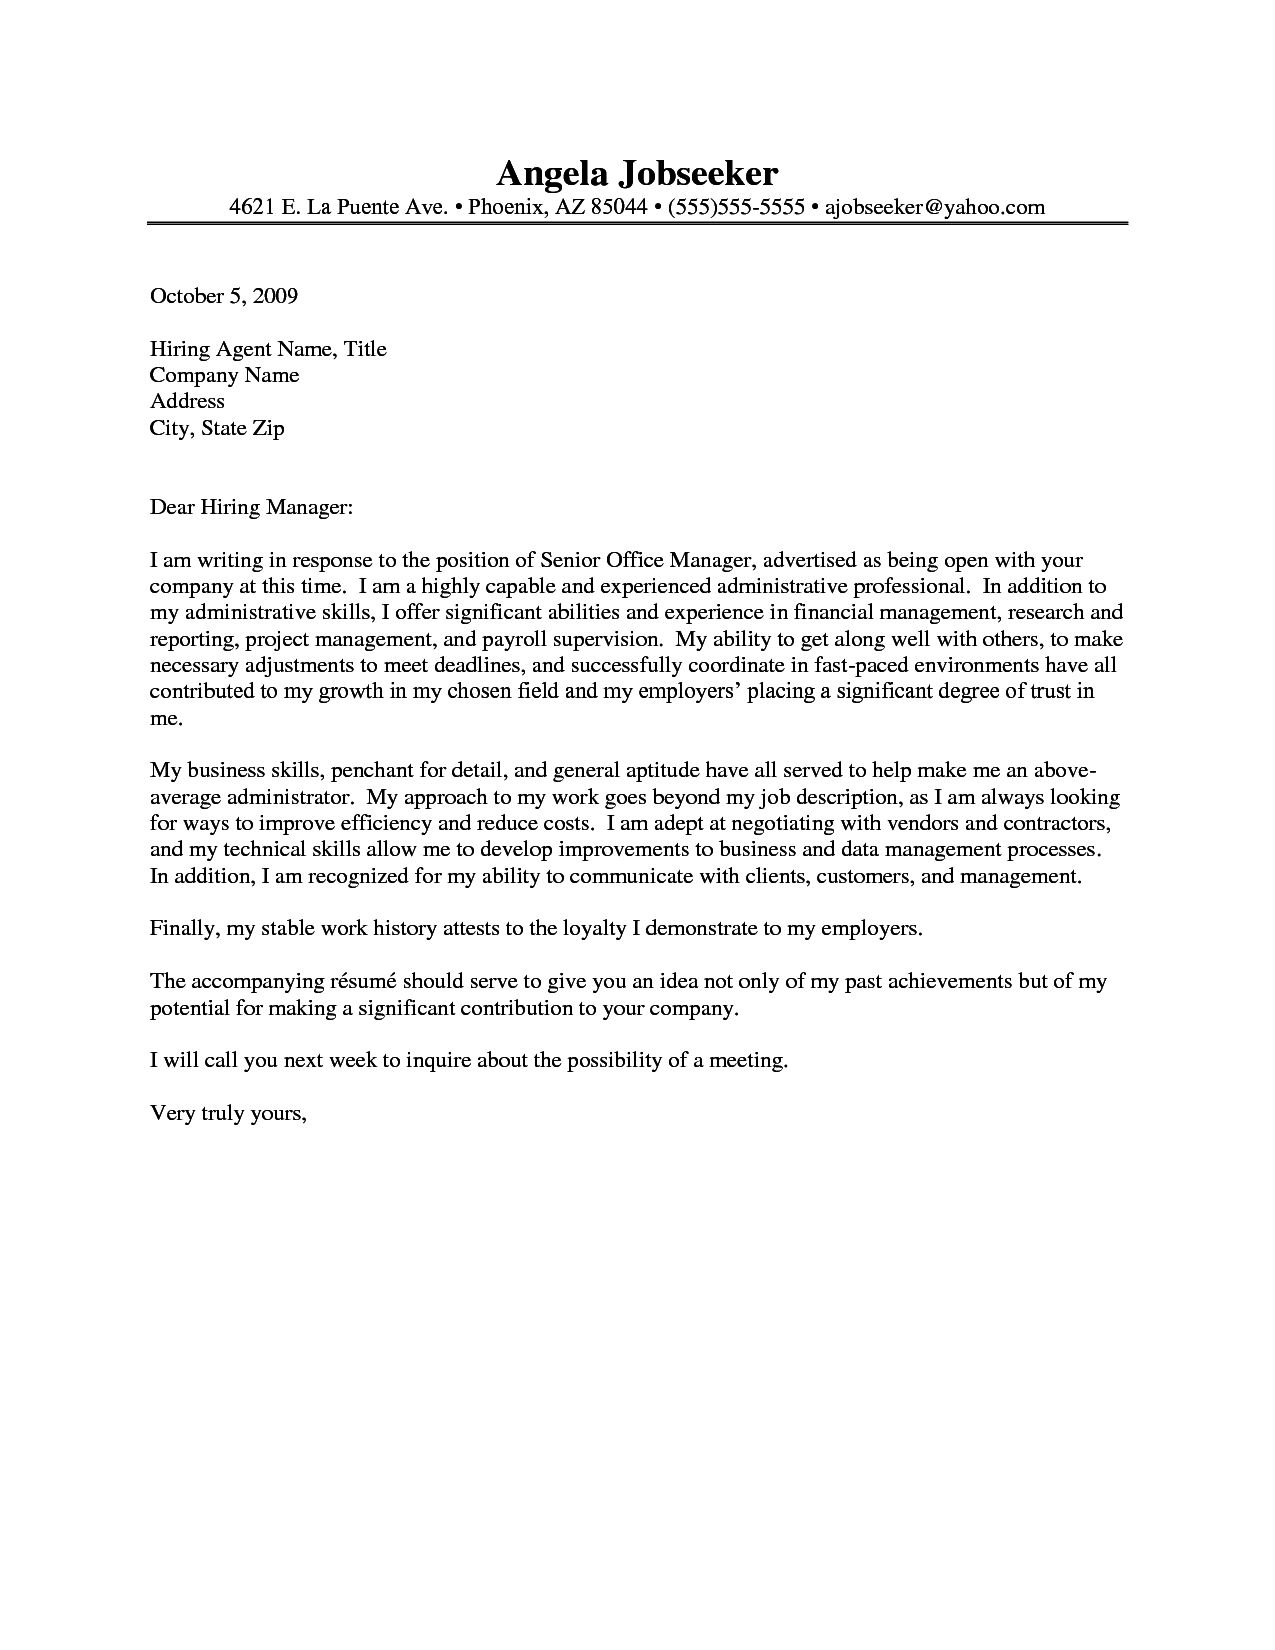 27+ Administrative Assistant Cover Letter Examples | Resume Cover ...